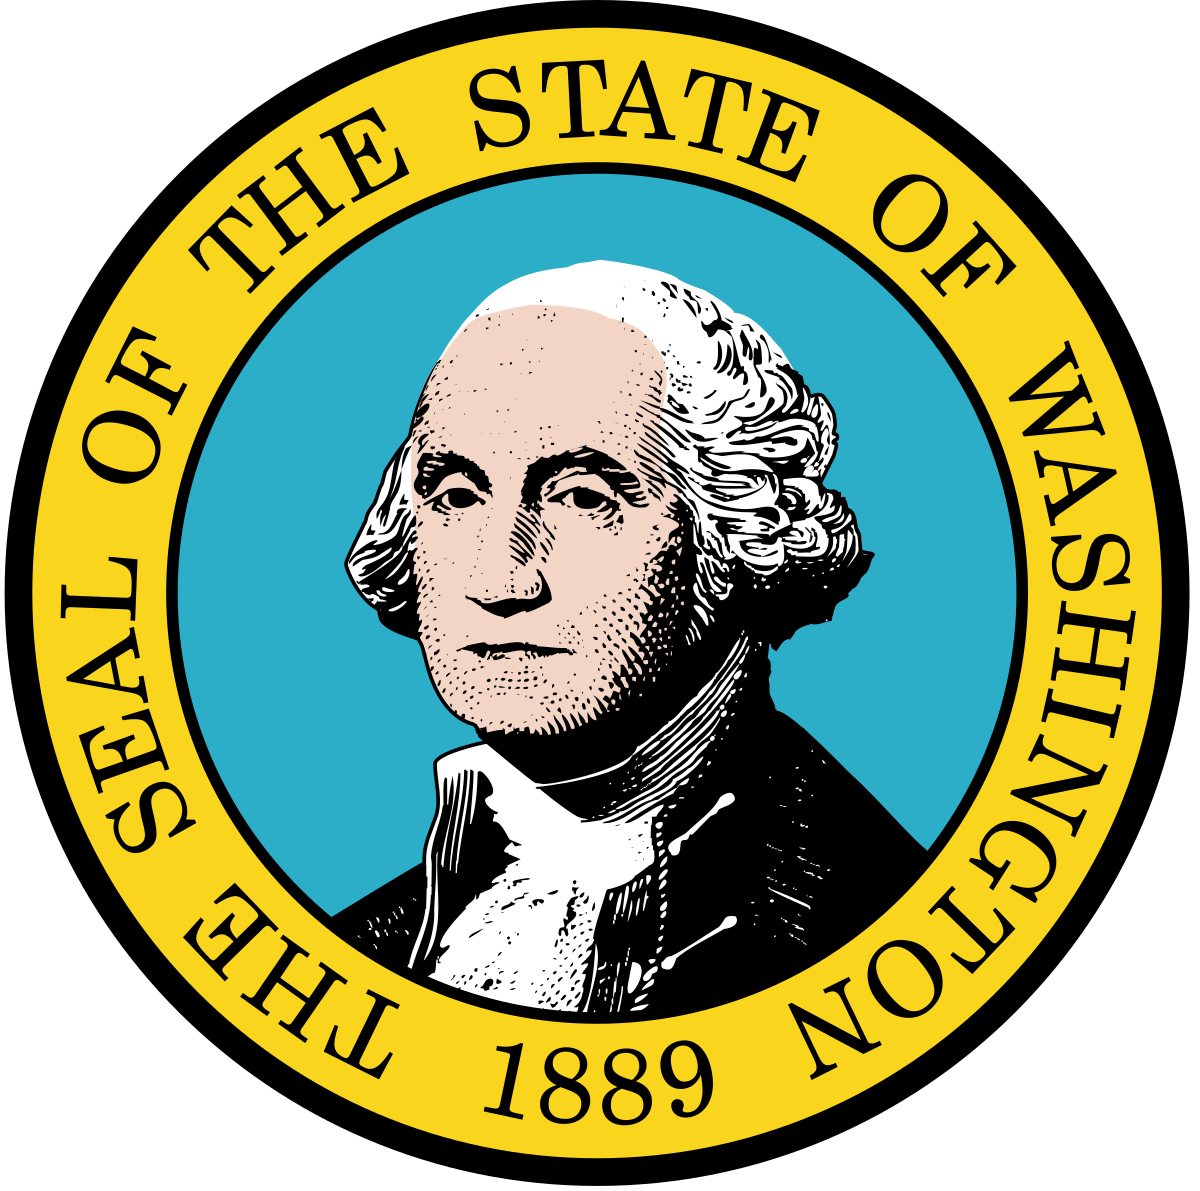 Washington state legislature clipart picture freeuse download 14 cliparts for free. Download Congress clipart march on ... picture freeuse download